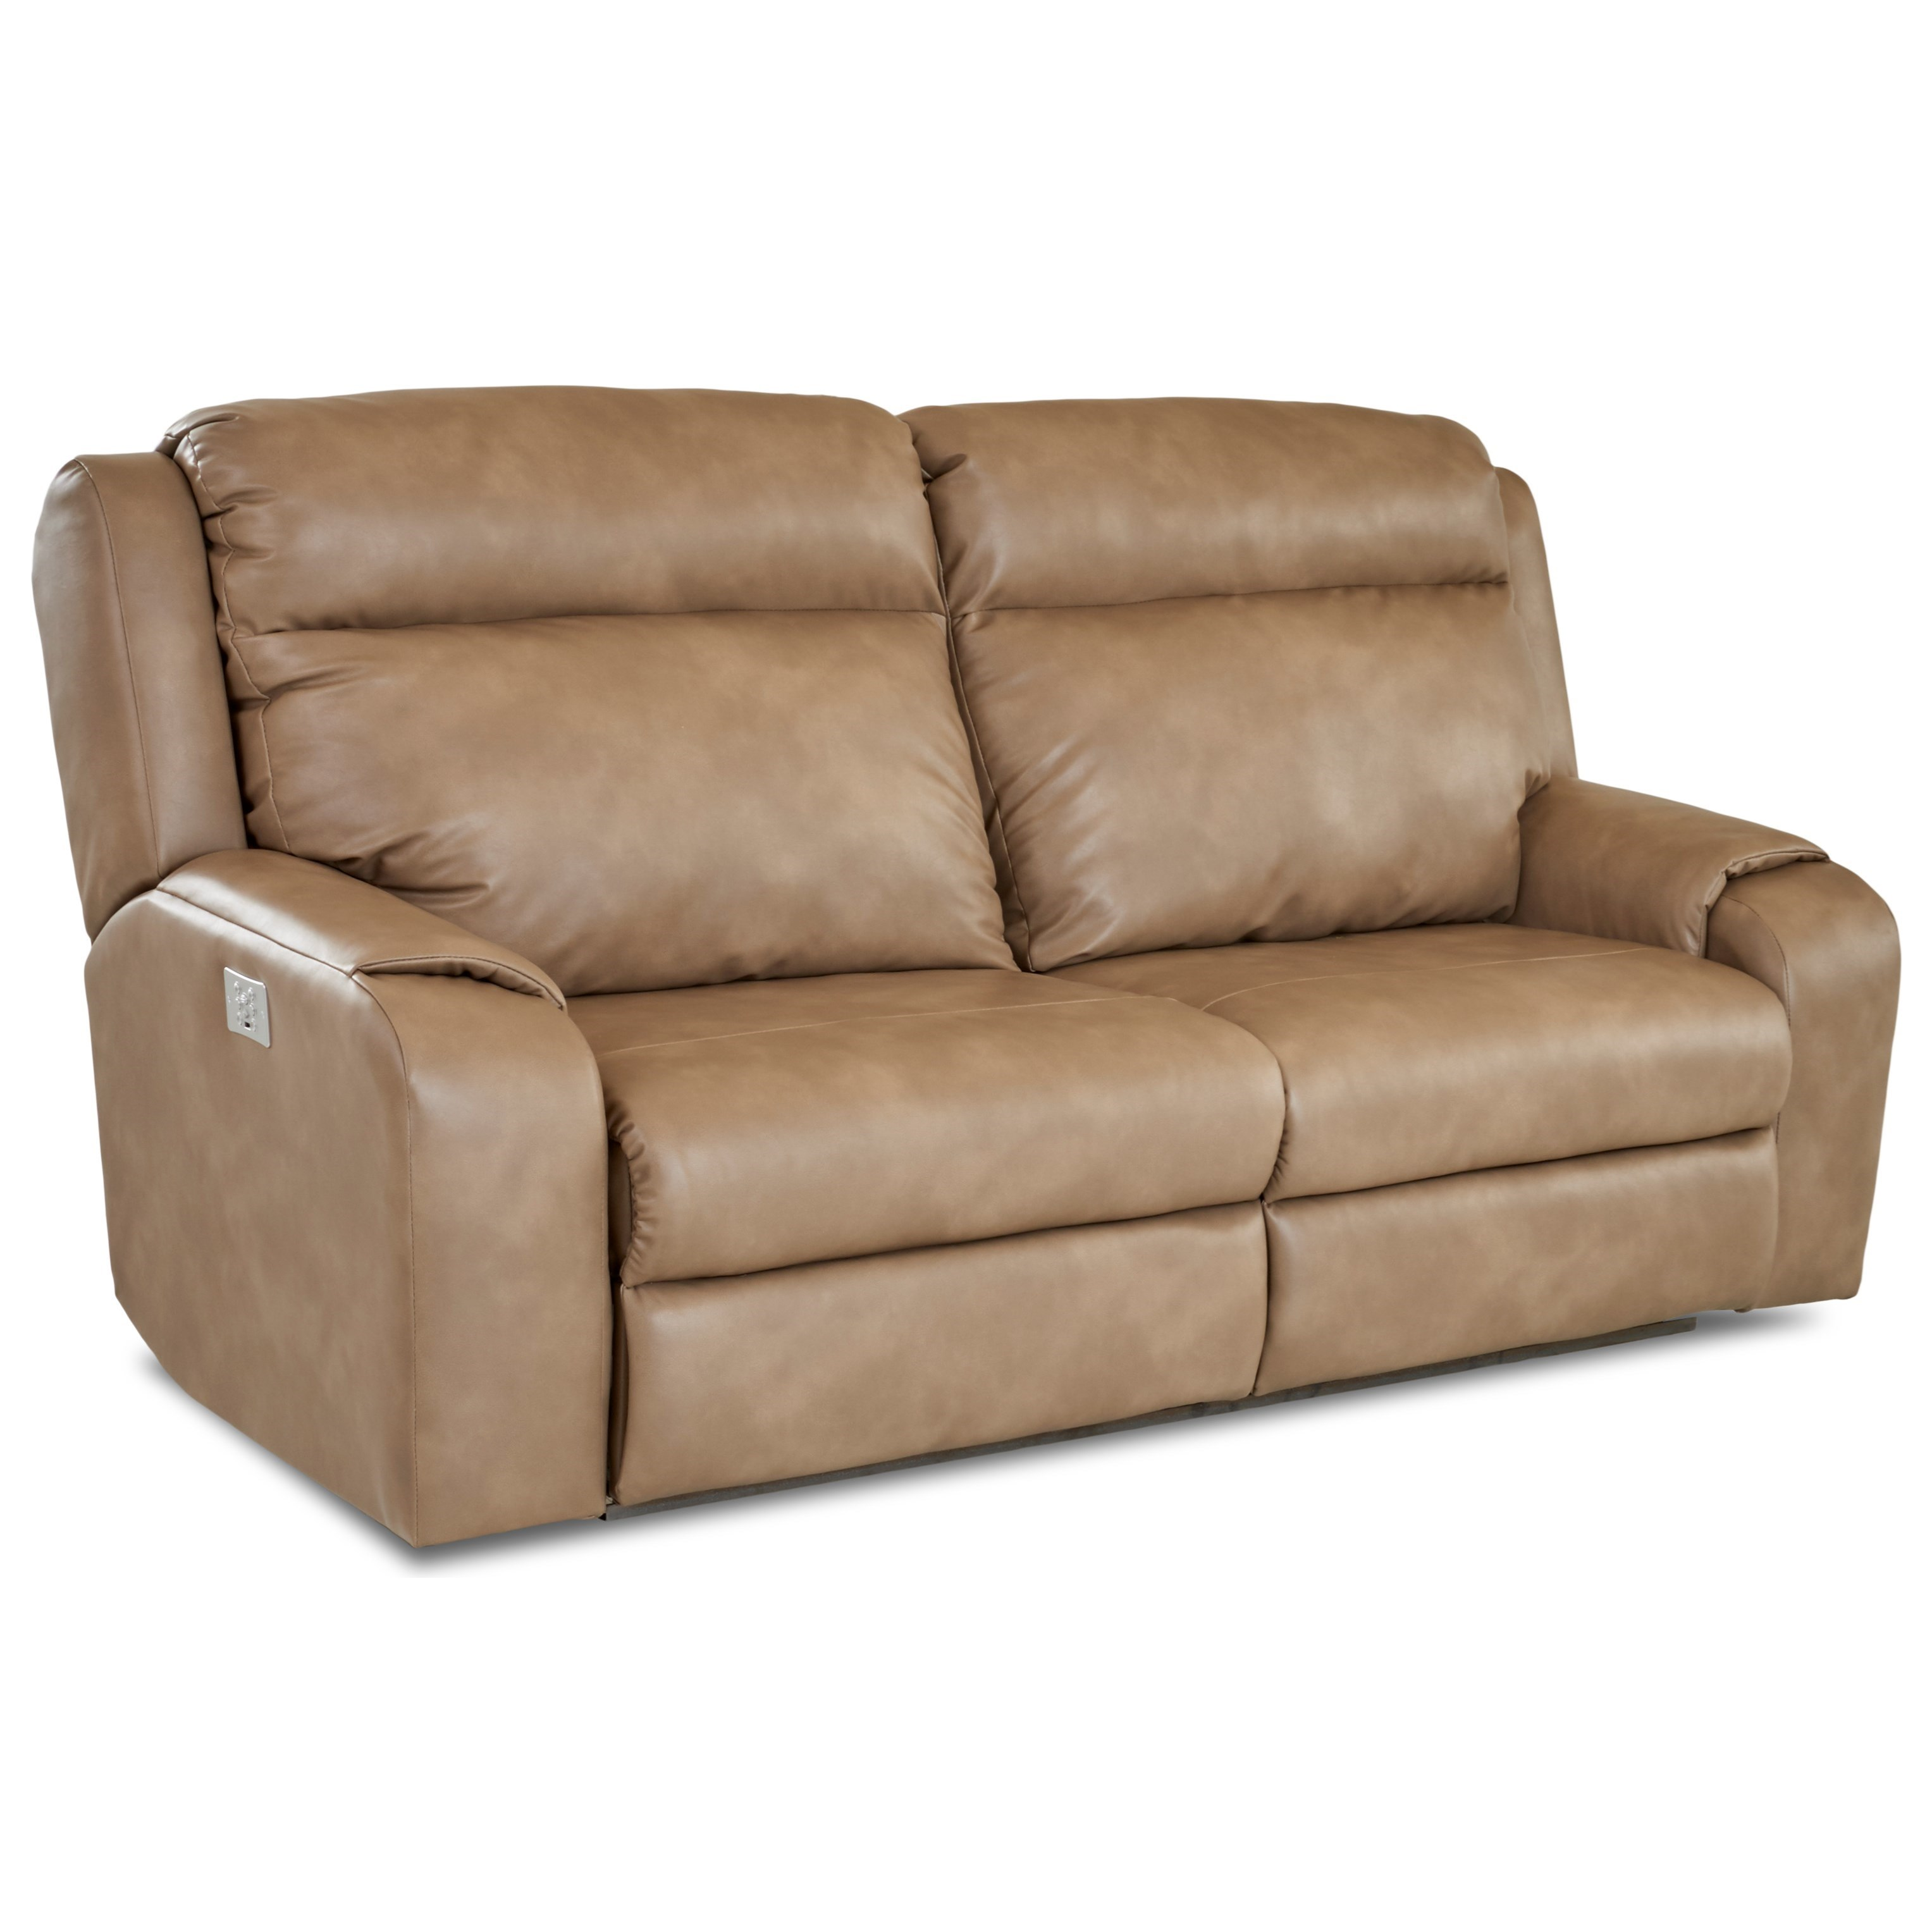 pomona sofa argos metal frame bed klaussner merlin two seat power reclining with